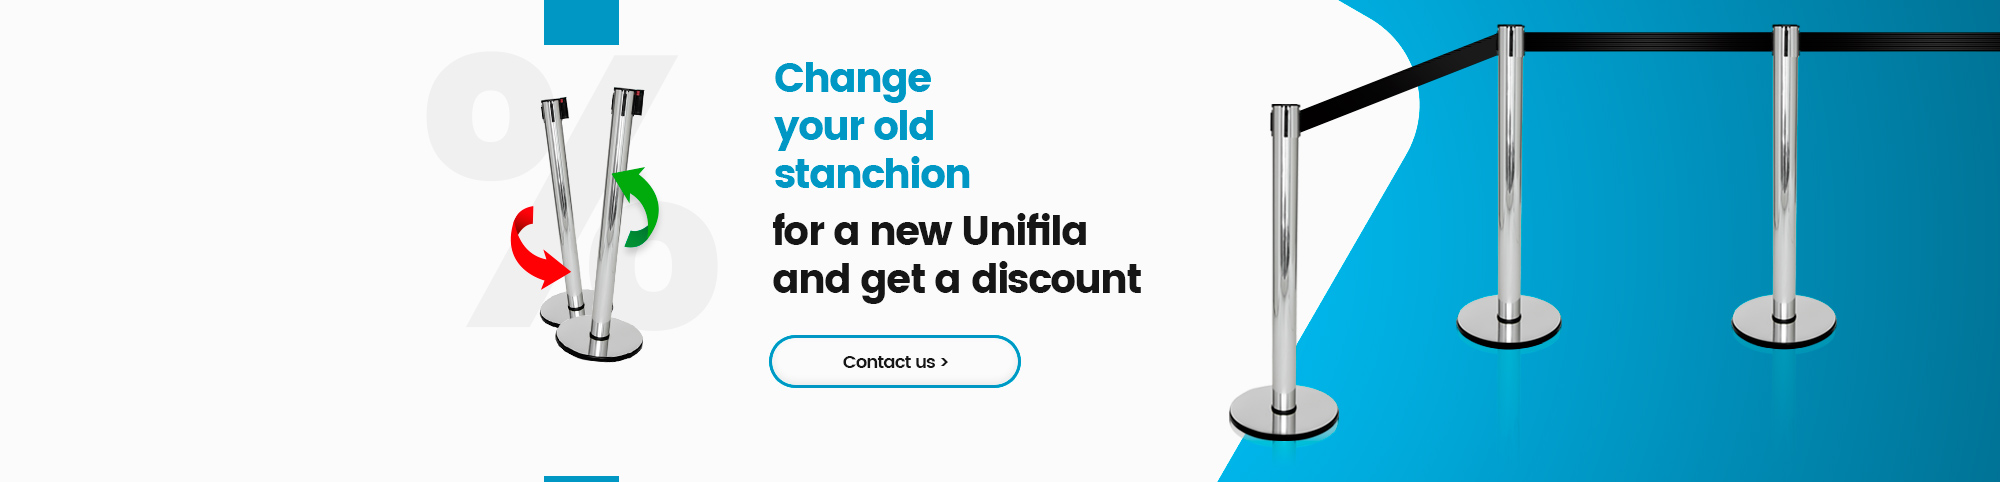 Change your old stanchion for a new Unifila ang get a discount!